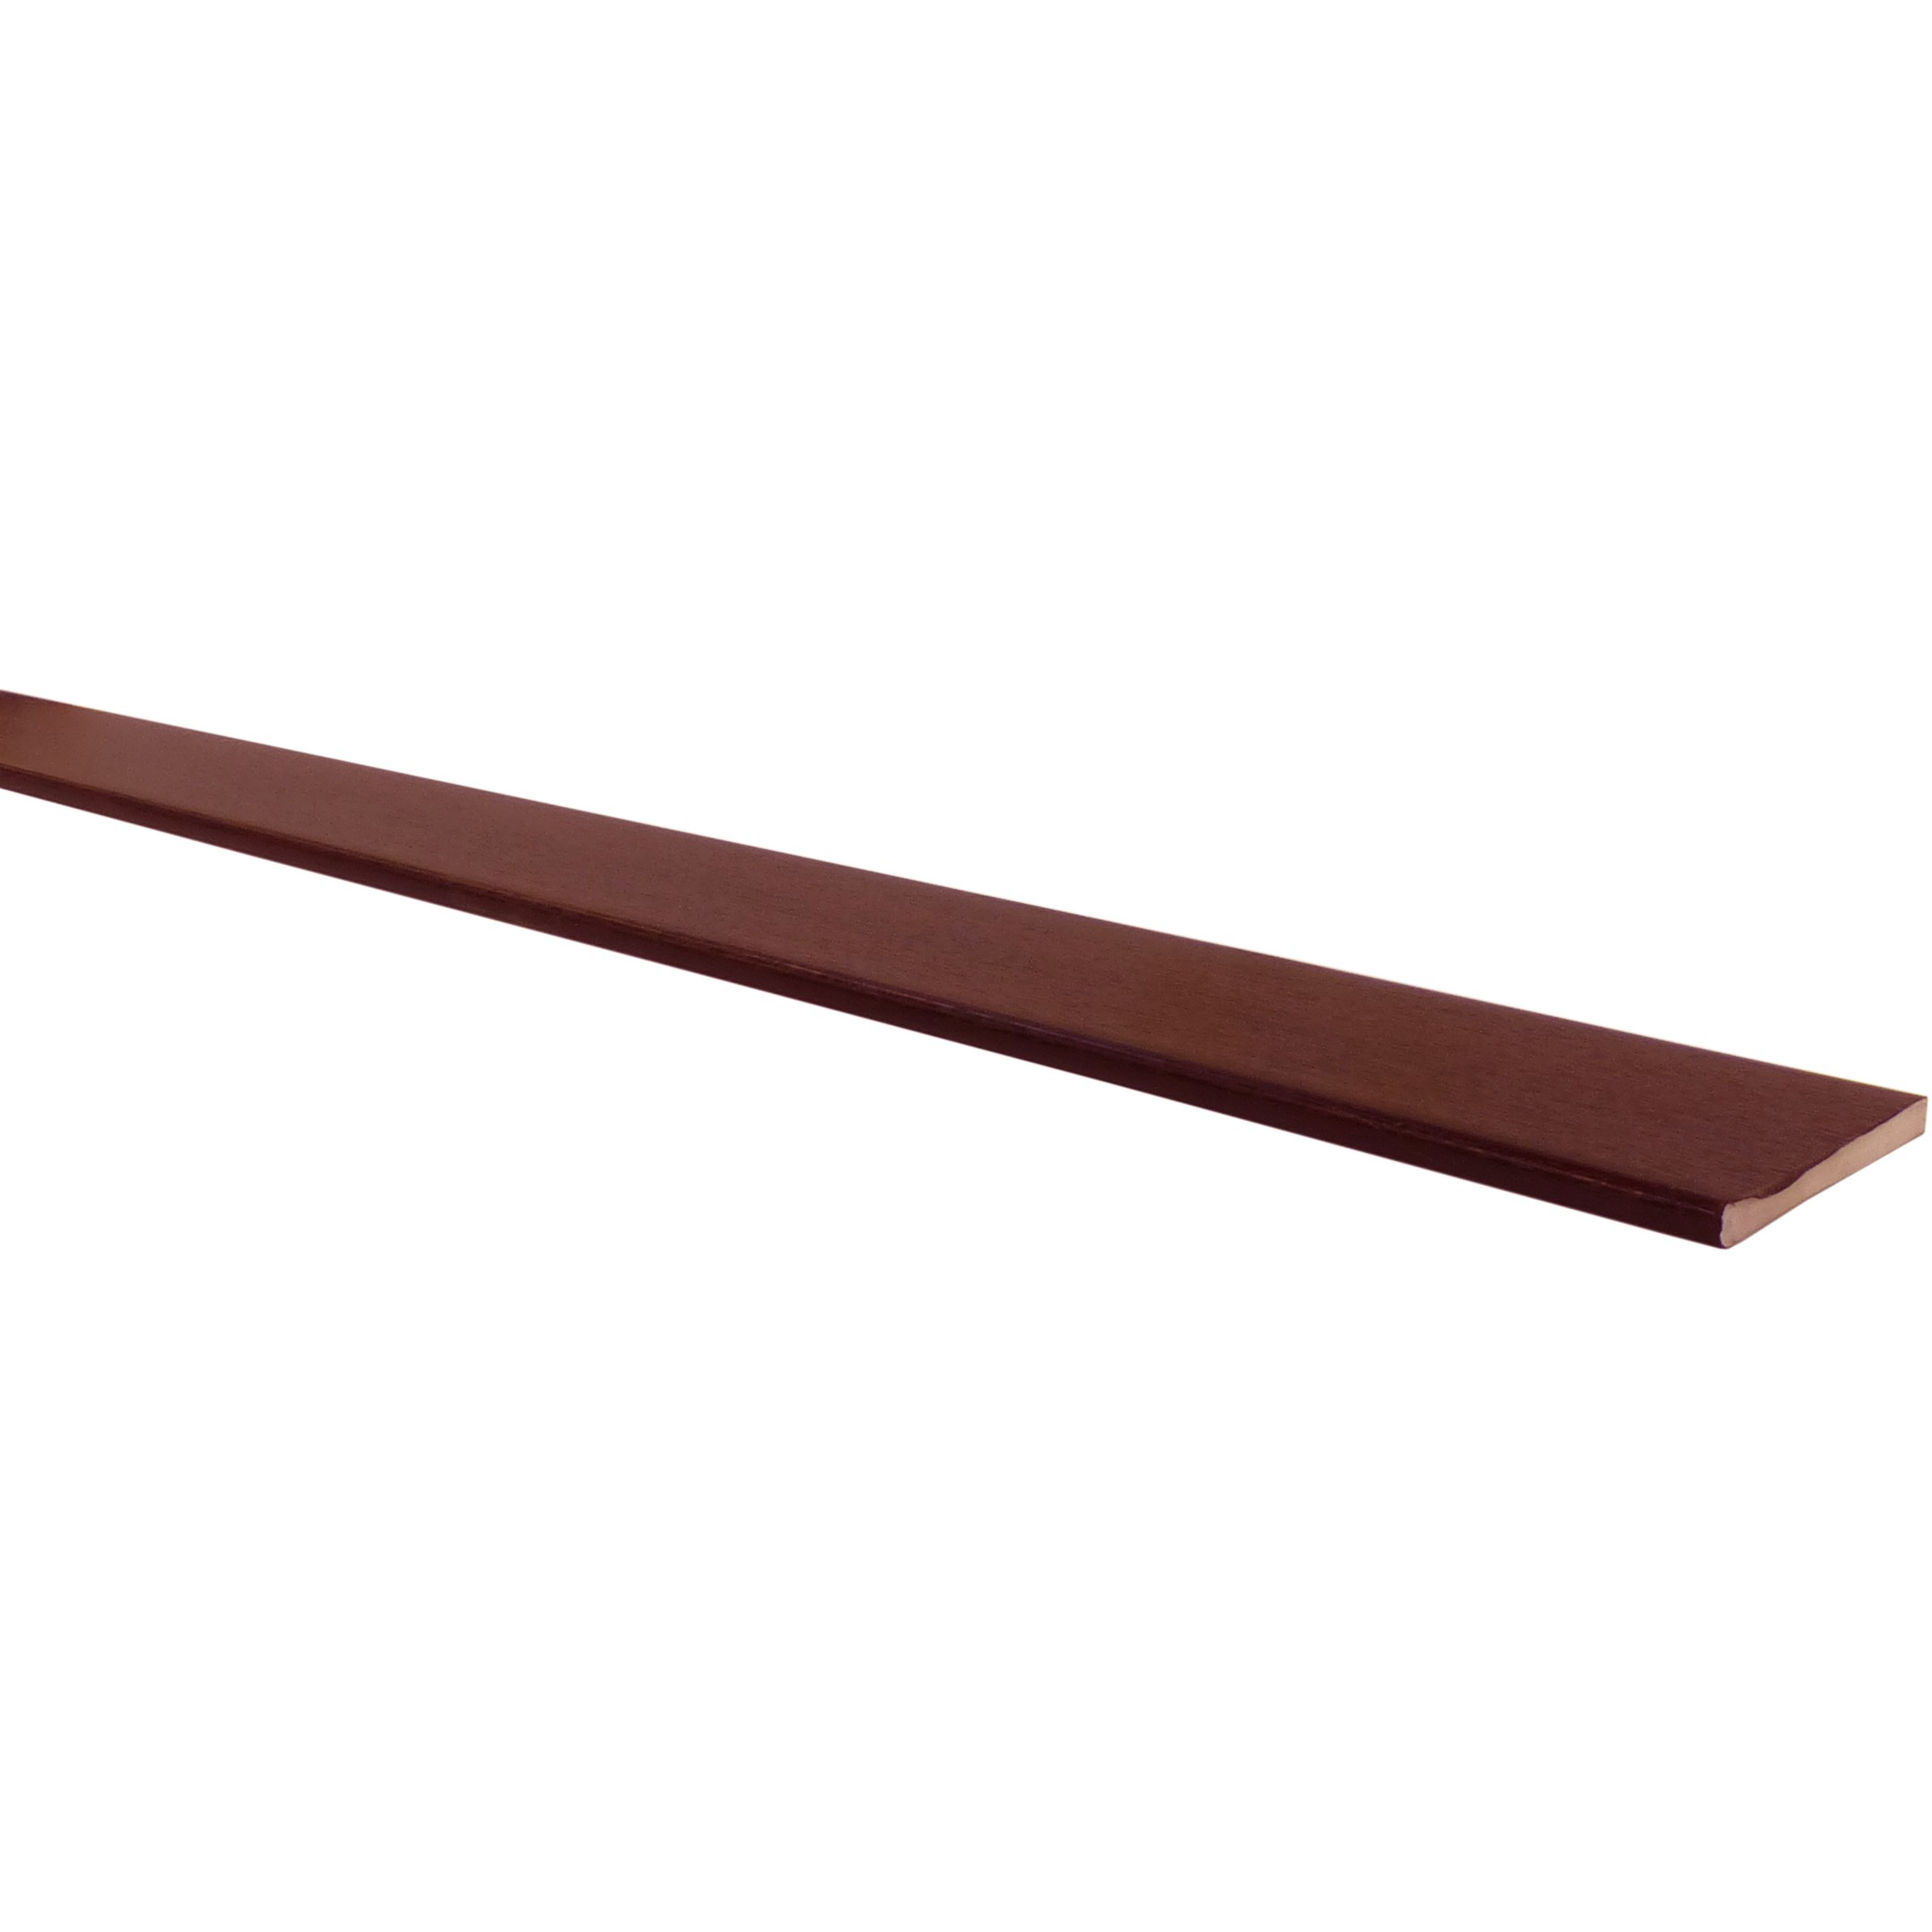 Freefoam 10mm Solid Soffit Board - Woodgrain Rosewood, 250mm, 5 metre